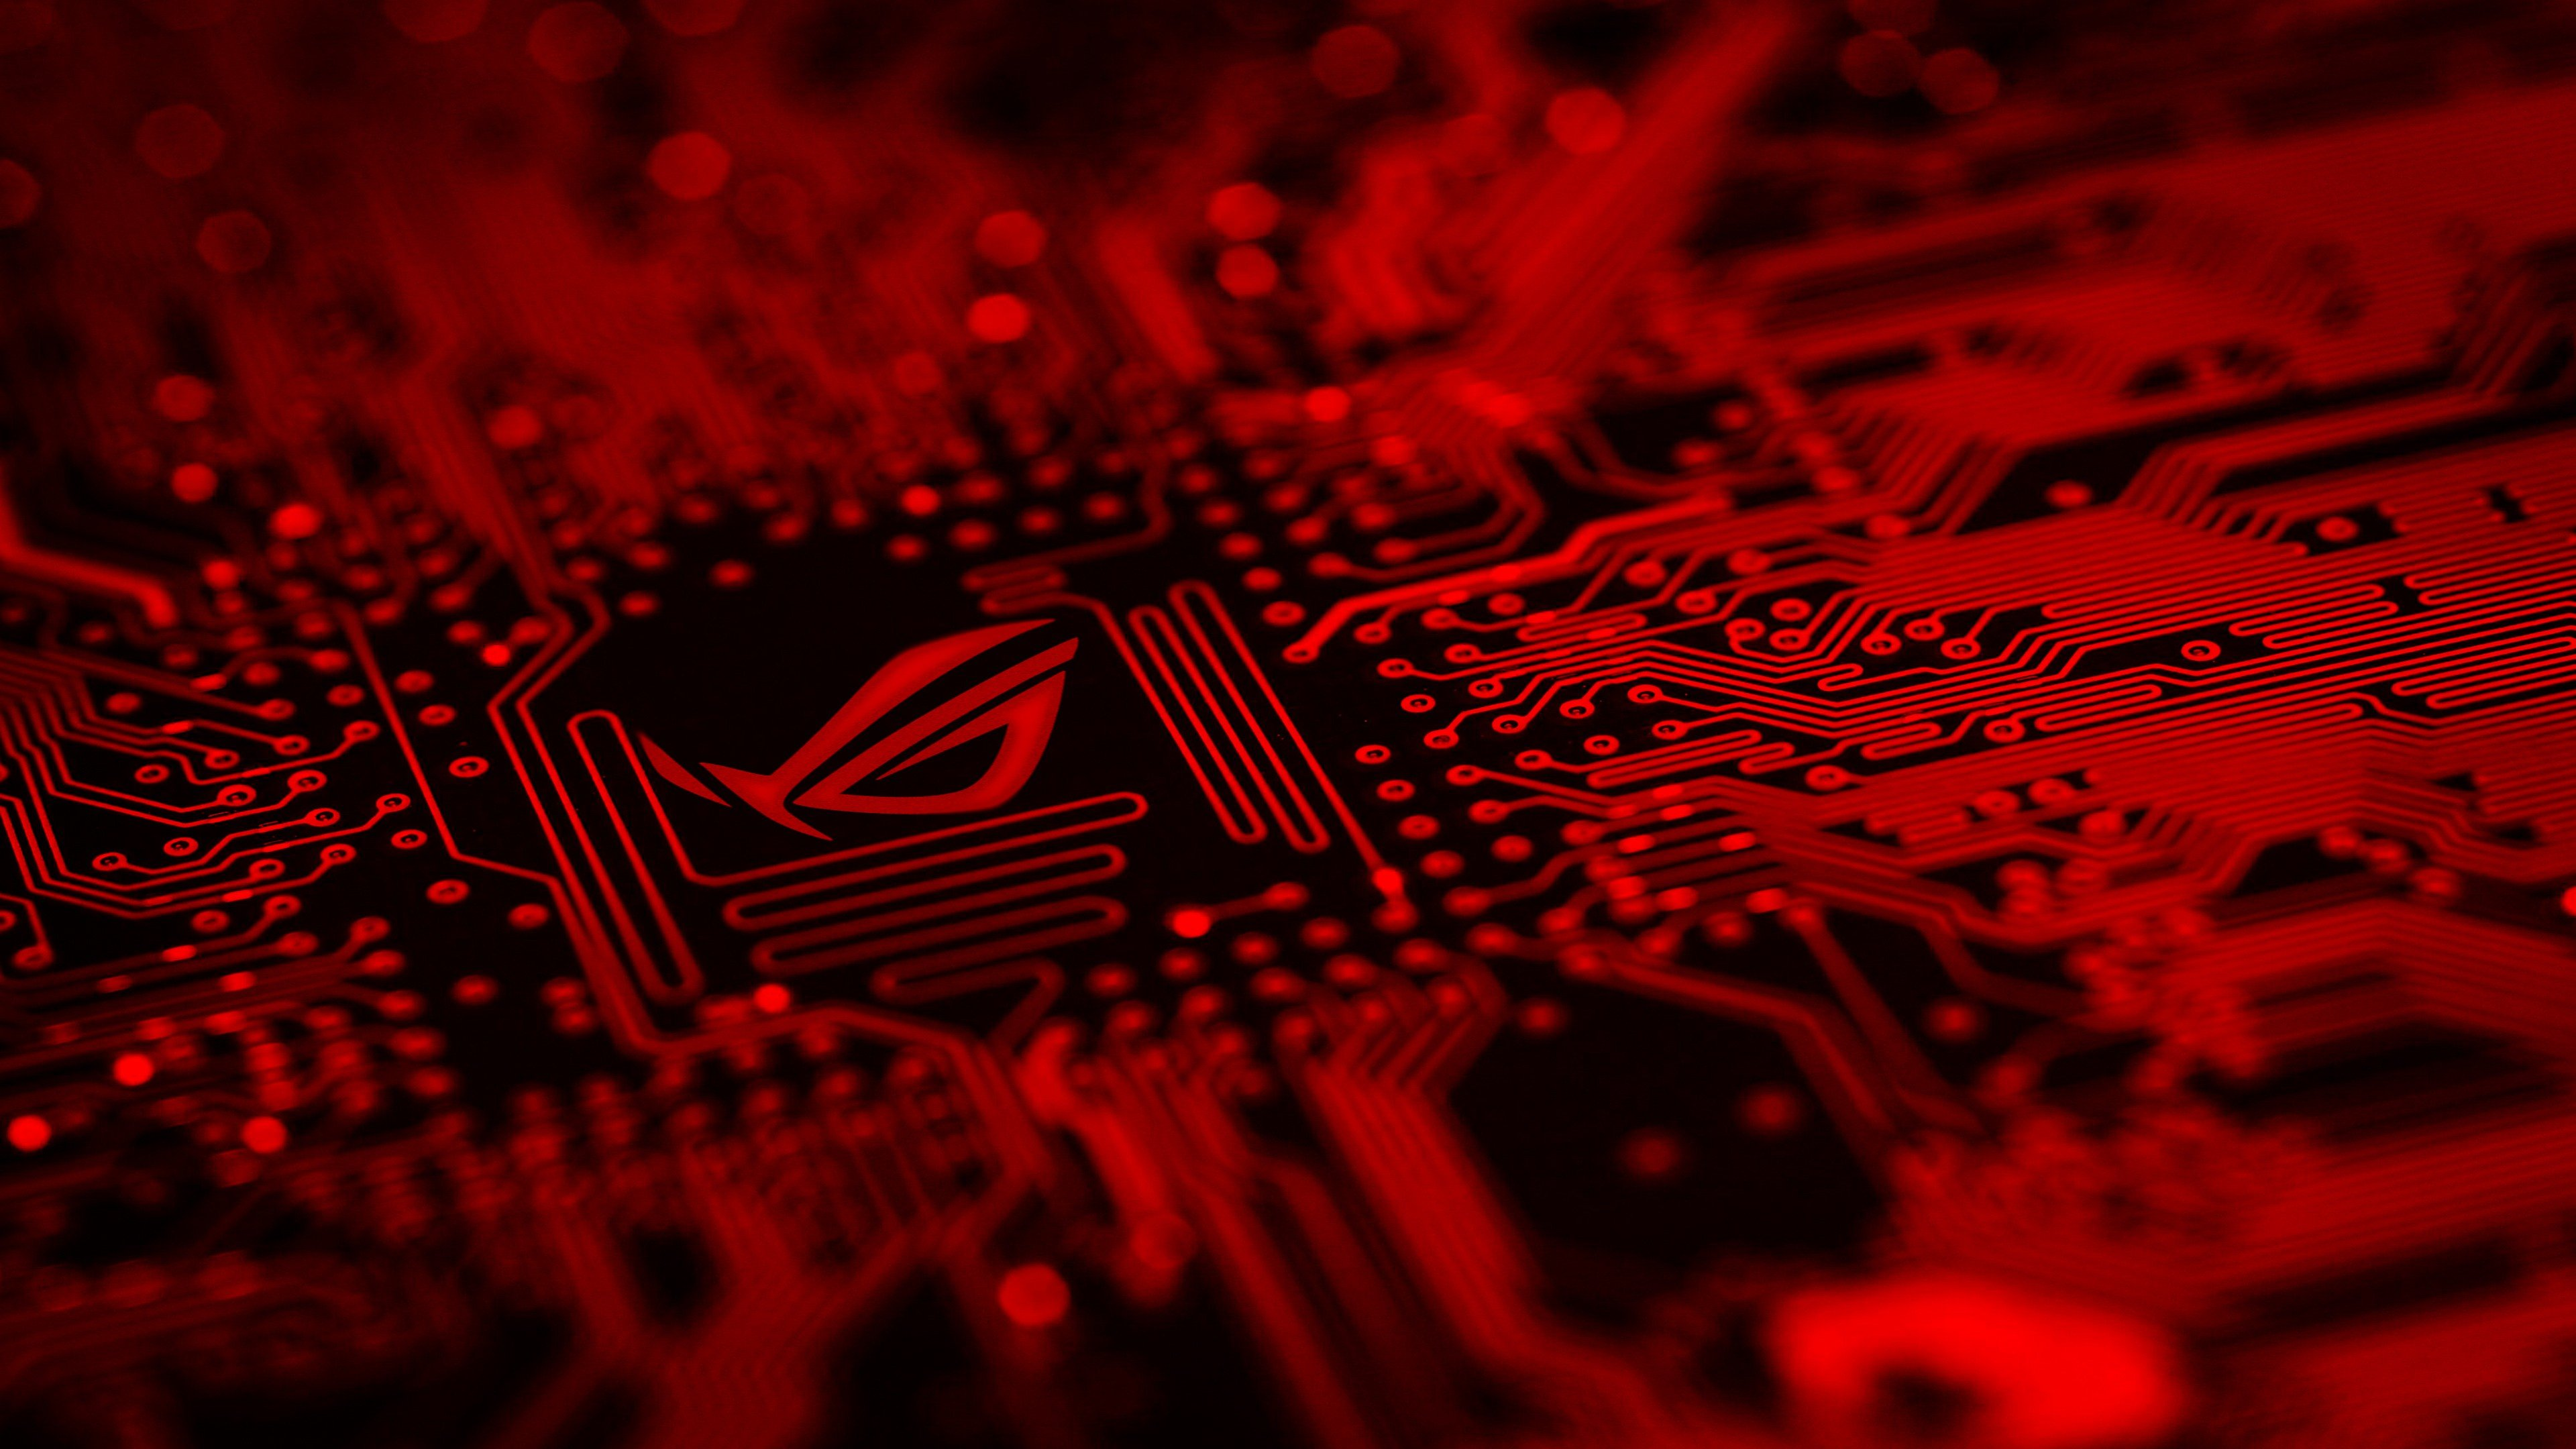 4k Wallpapers For Pc Cars Asus Motherboards Tilt Shift Technology Pc Gaming